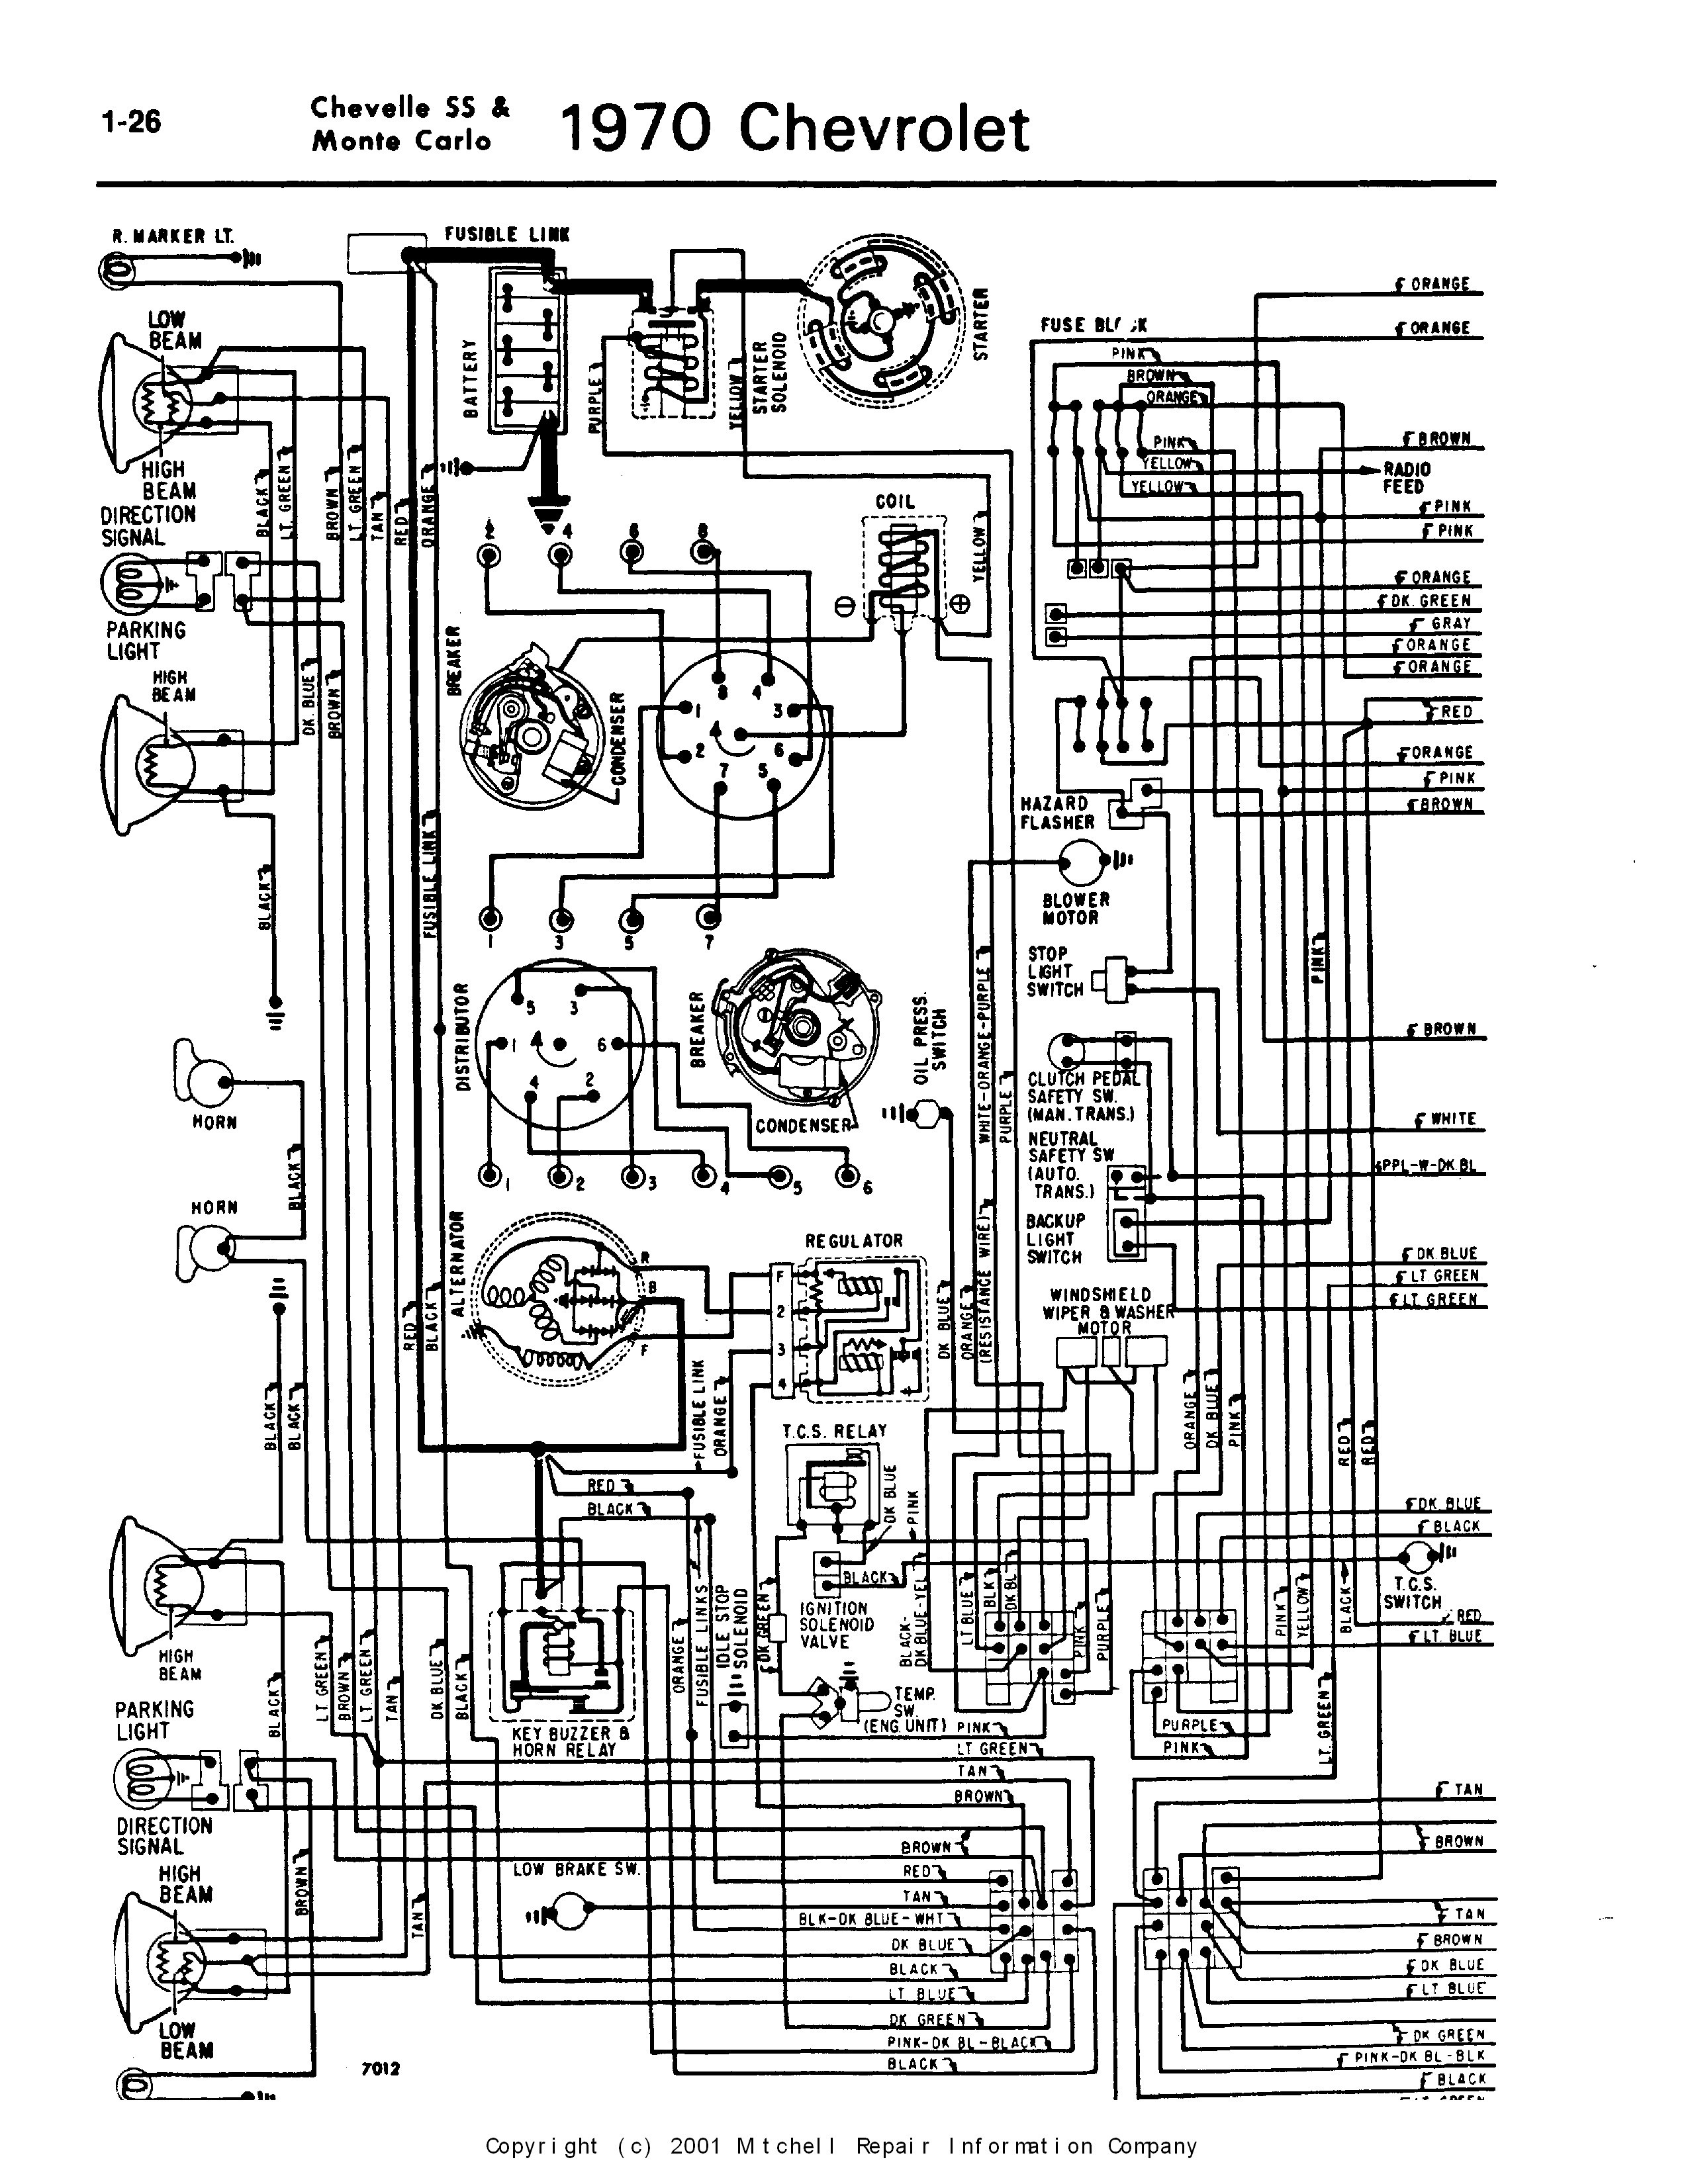 1970 Chevelle Vacuum Hose Diagram 1970 Get Free Image About Wiring on